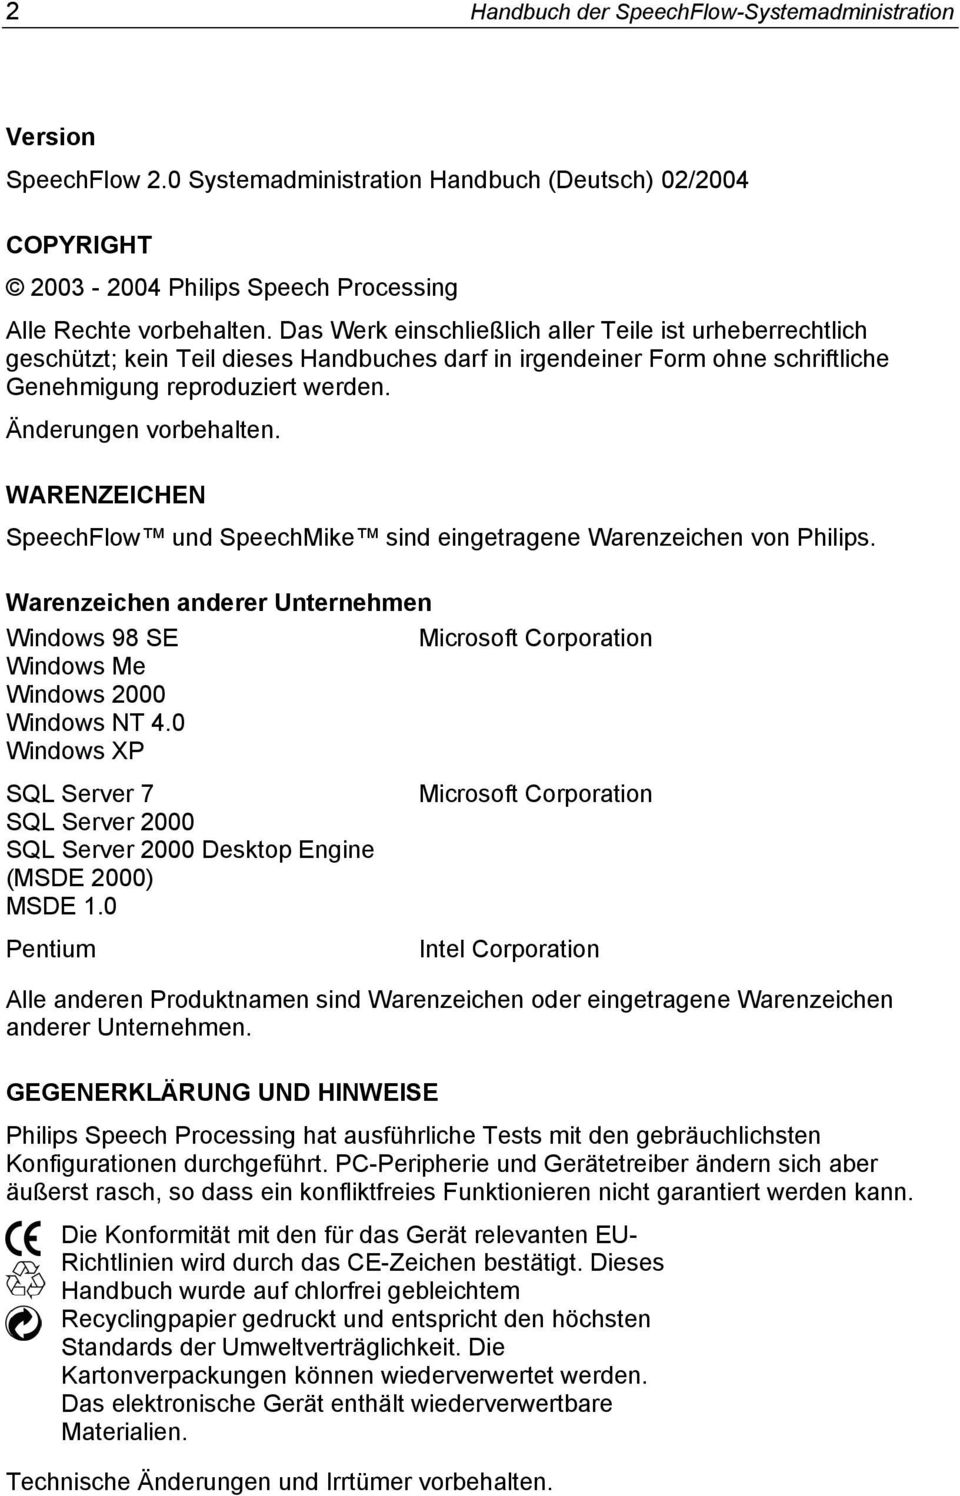 WARENZEICHEN SpeechFlow und SpeechMike sind eingetragene Warenzeichen von Philips. Warenzeichen anderer Unternehmen Windows 98 SE Microsoft Corporation Windows Me Windows 2000 Windows NT 4.